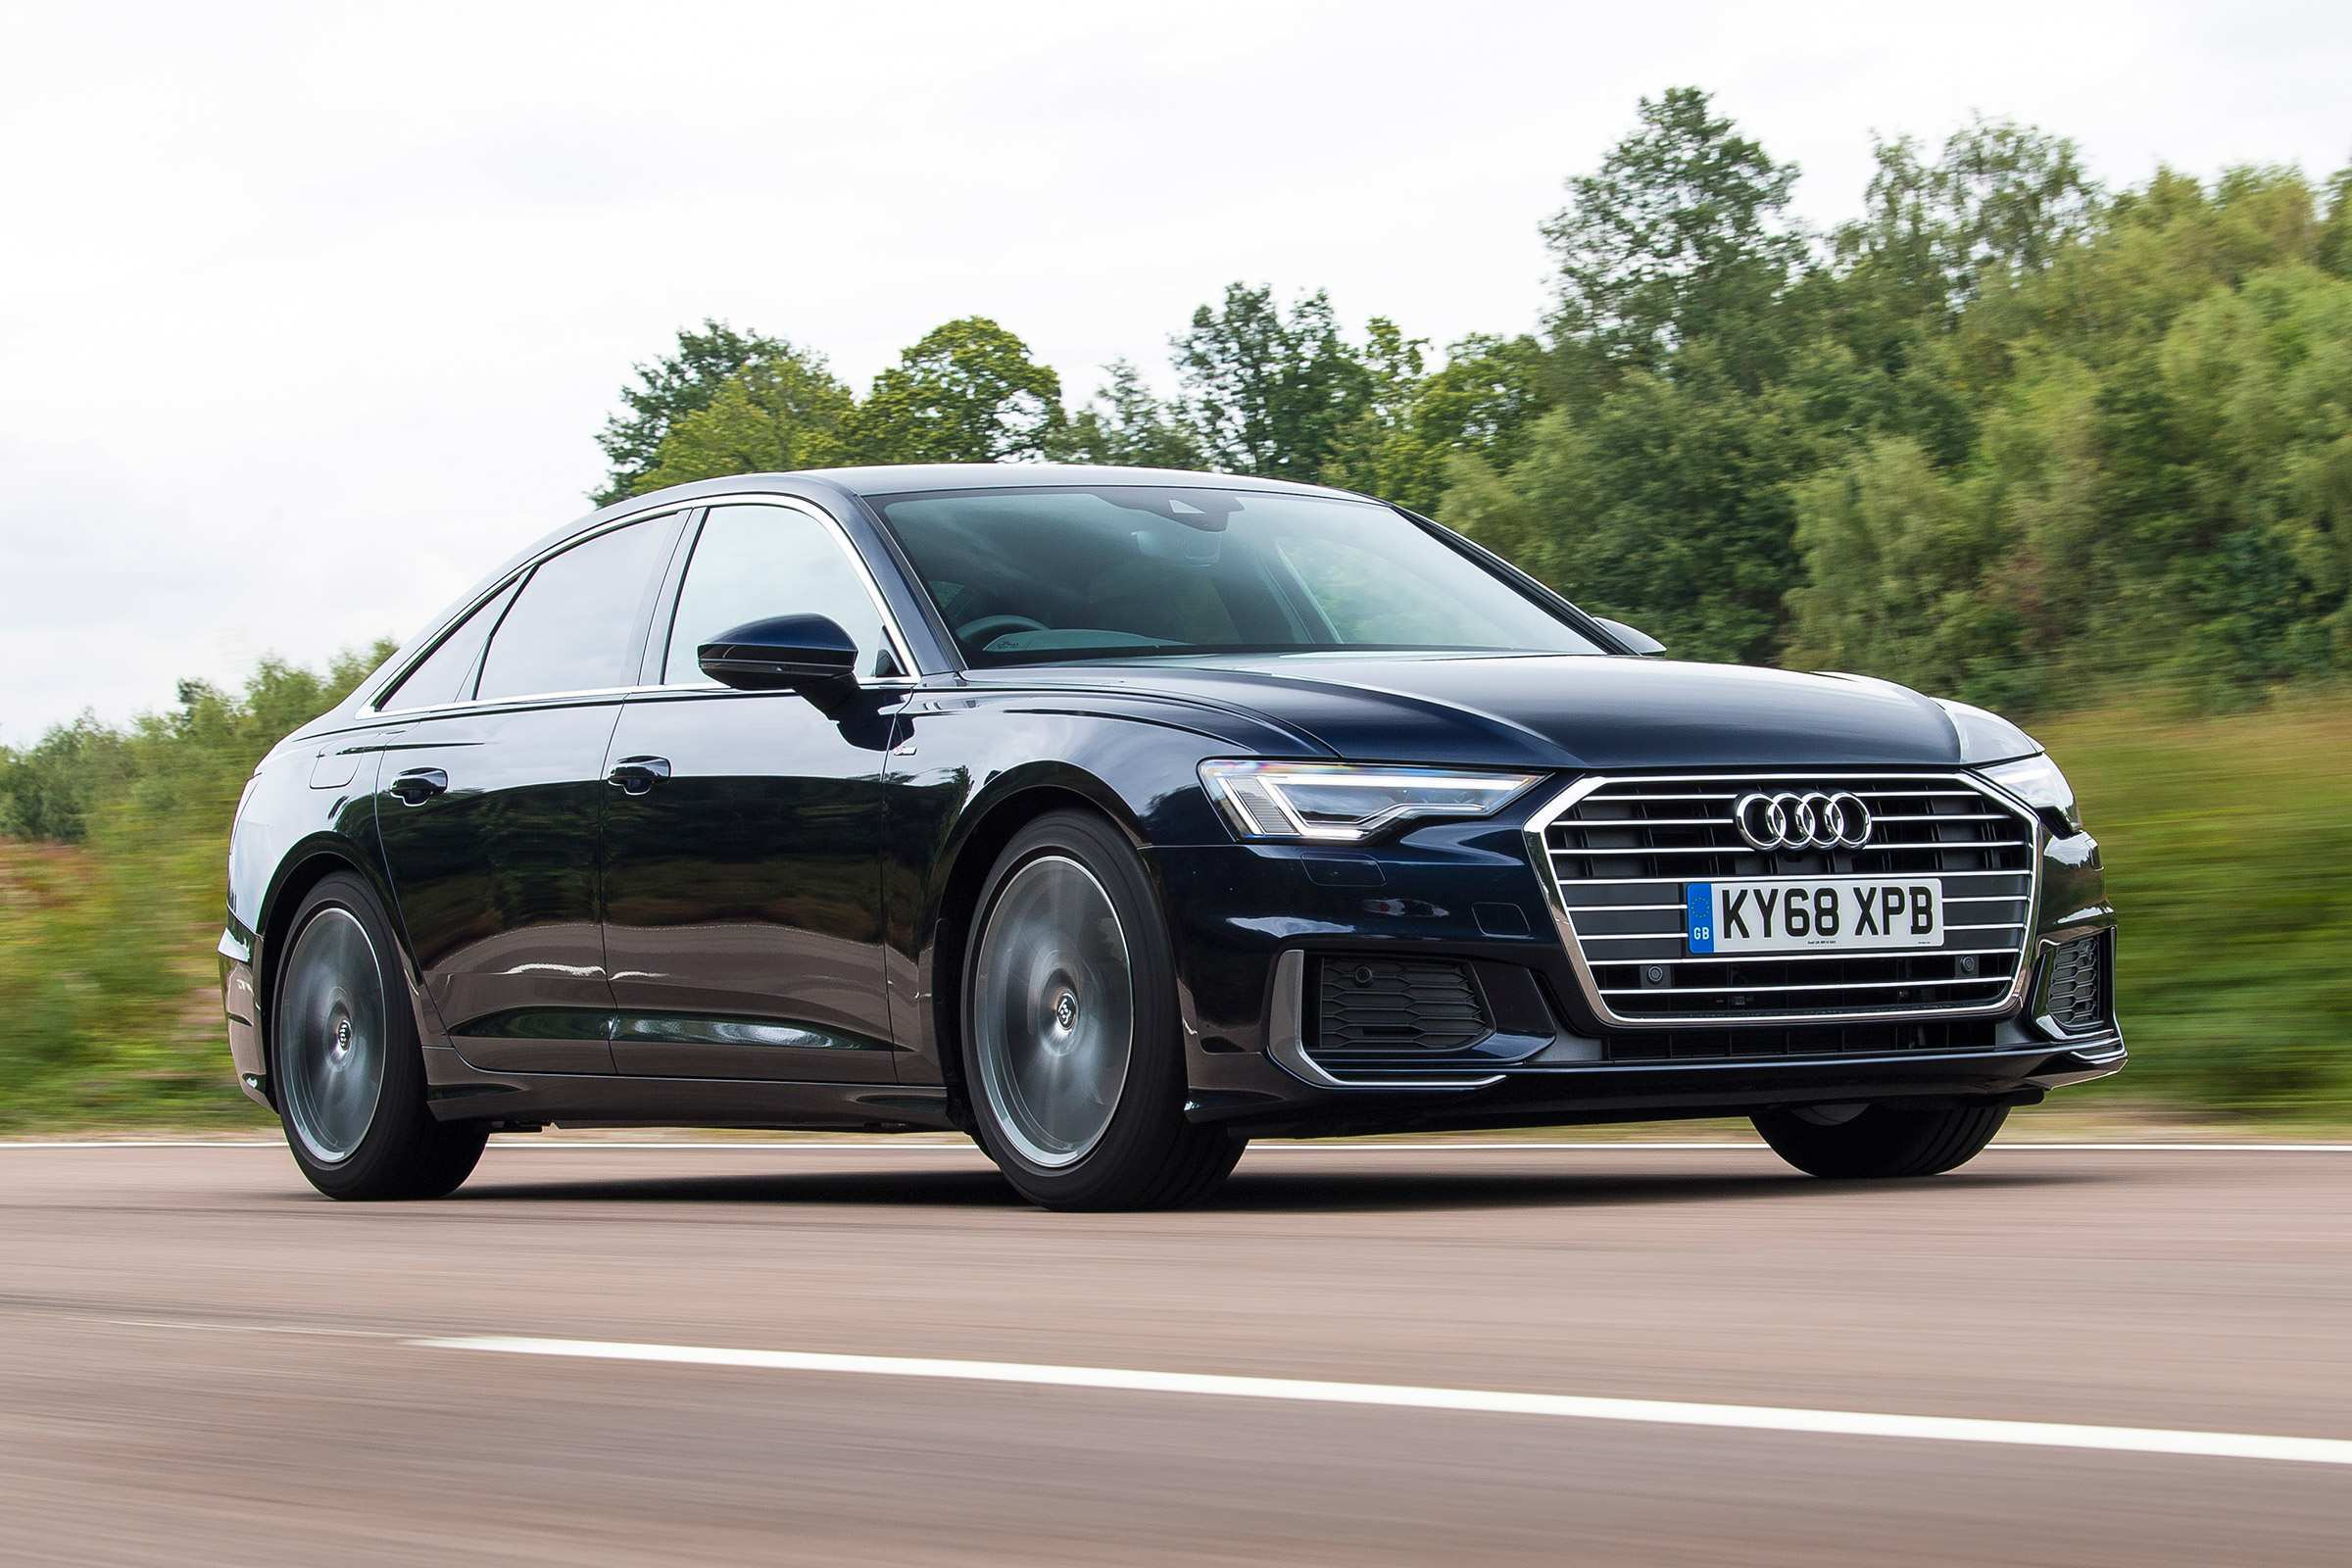 96 Best Review New Audi A6 S Line 2019 Picture Release Date And Review Specs with New Audi A6 S Line 2019 Picture Release Date And Review